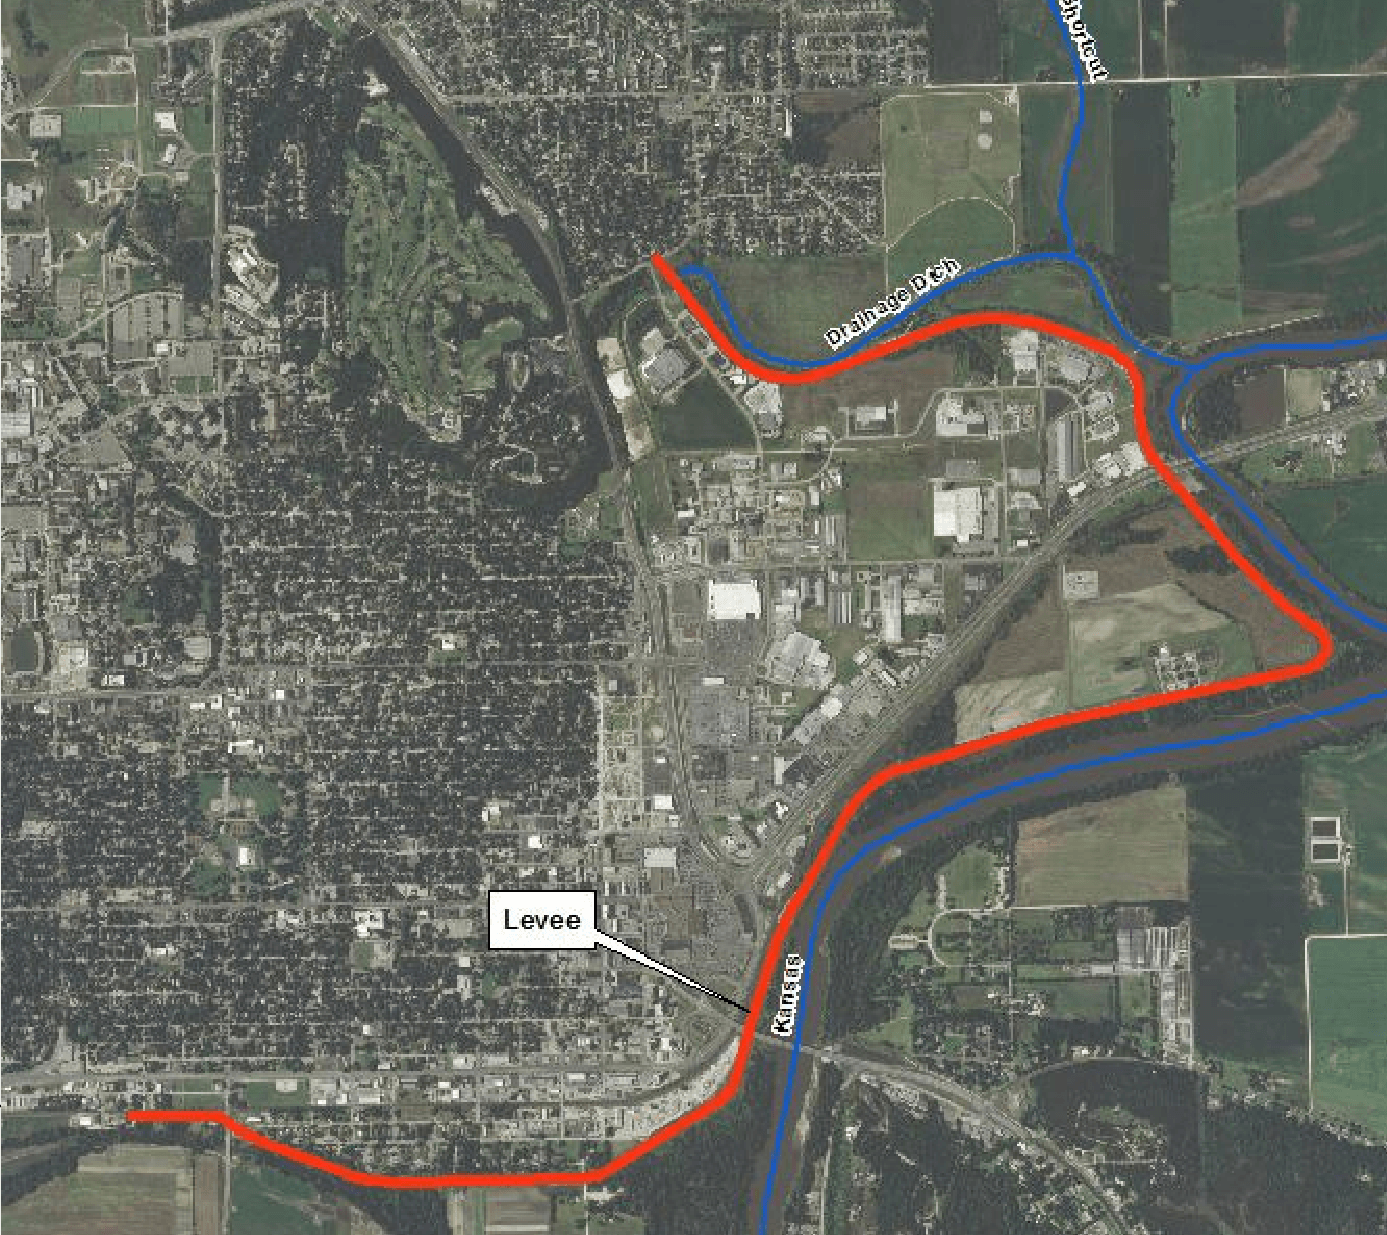 map of levee and area it protects